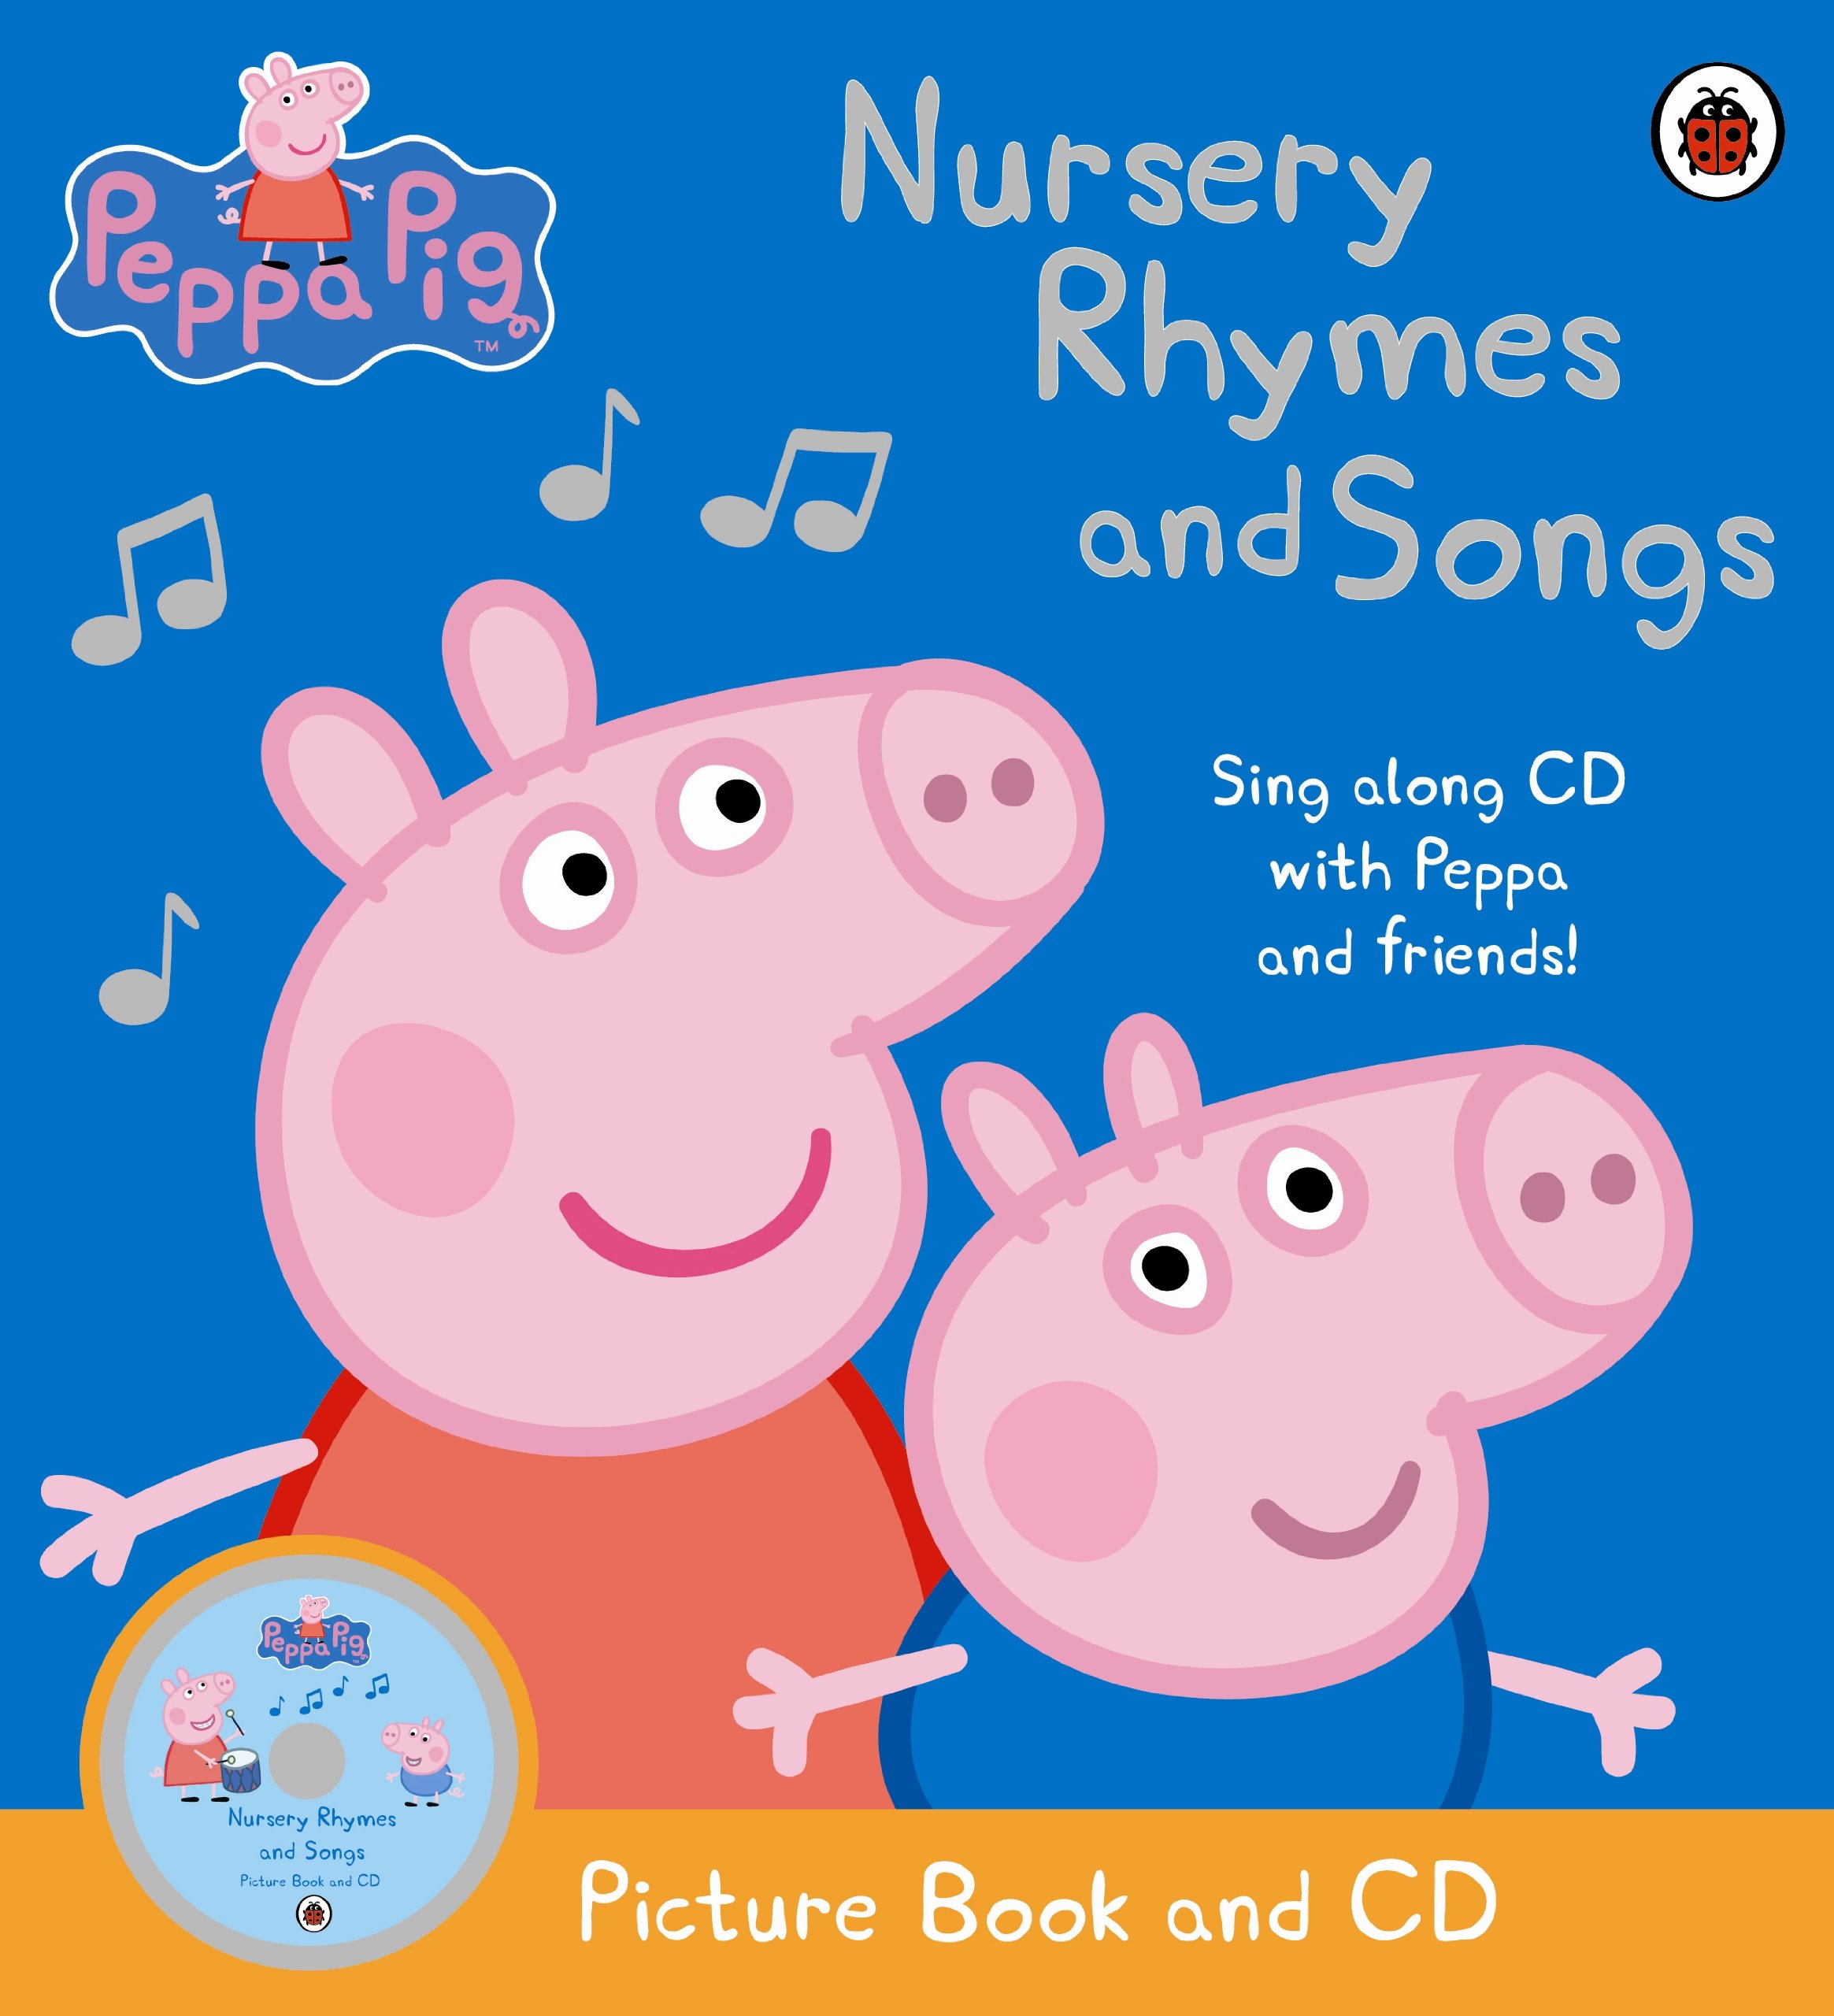 Peppa Pig - Nursery Rhymes and Songs: Picture Book and CD: Collectif:  8601200529142: Amazon.com: Books